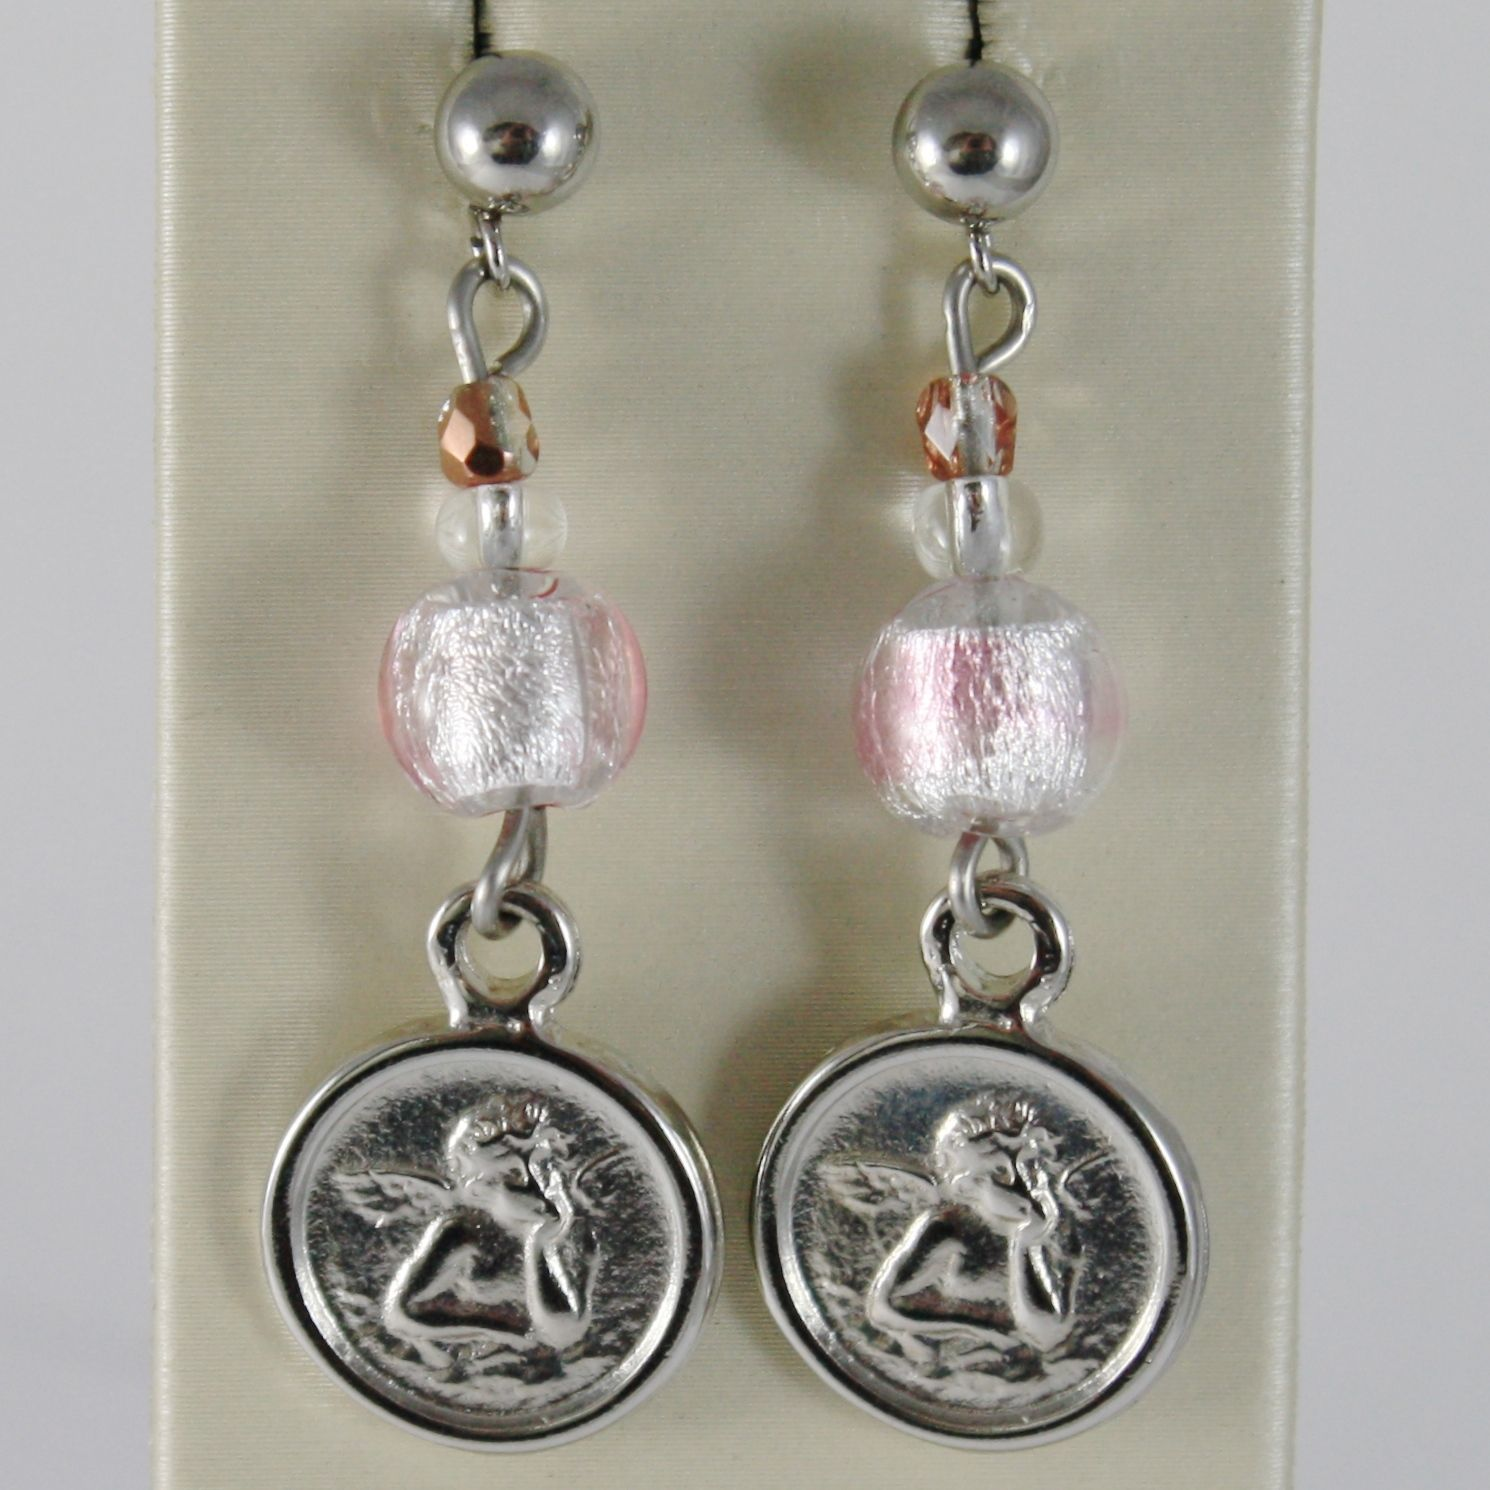 ANTICA MURRINA VENEZIA PENDANT EARRINGS ANGEL MEDAL AND PINK SPHERES BALLS BALL